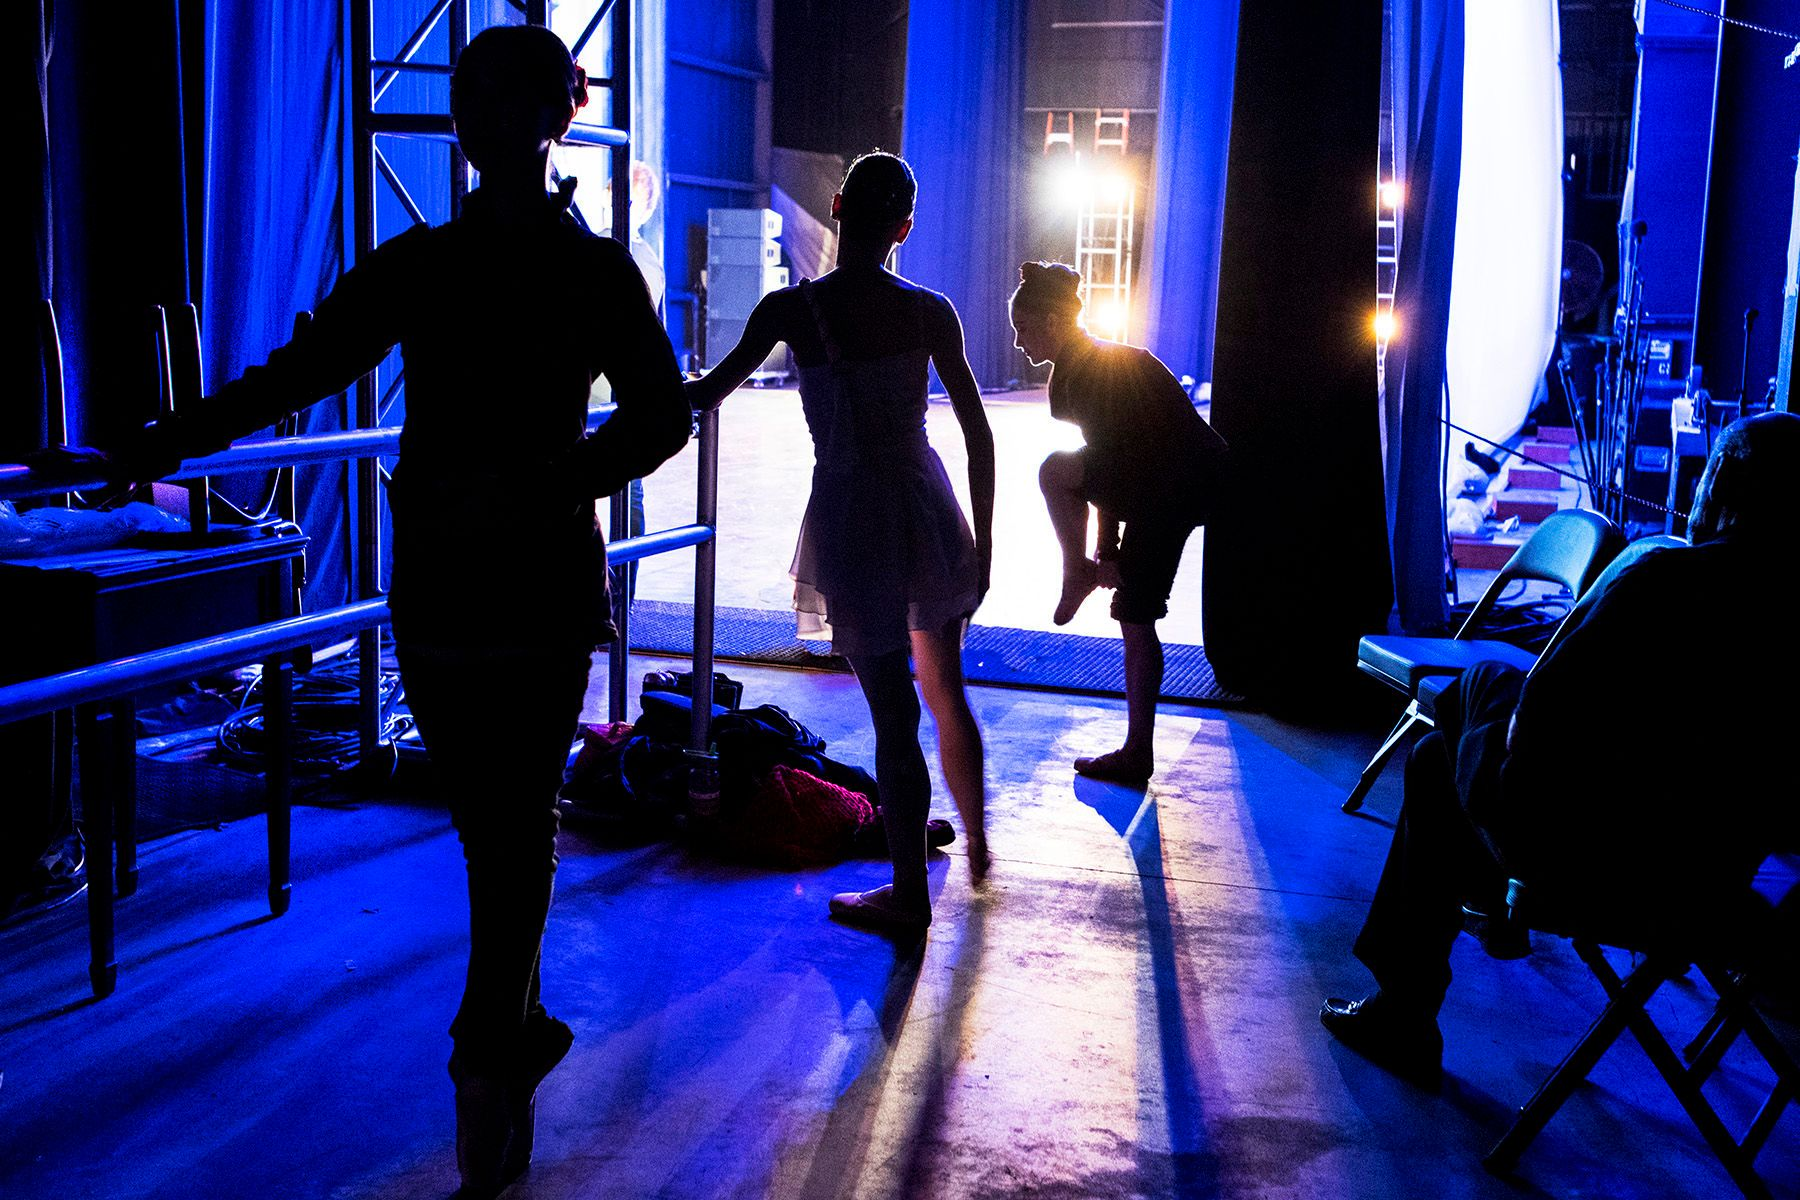 BACKSTAGE AT BALLET